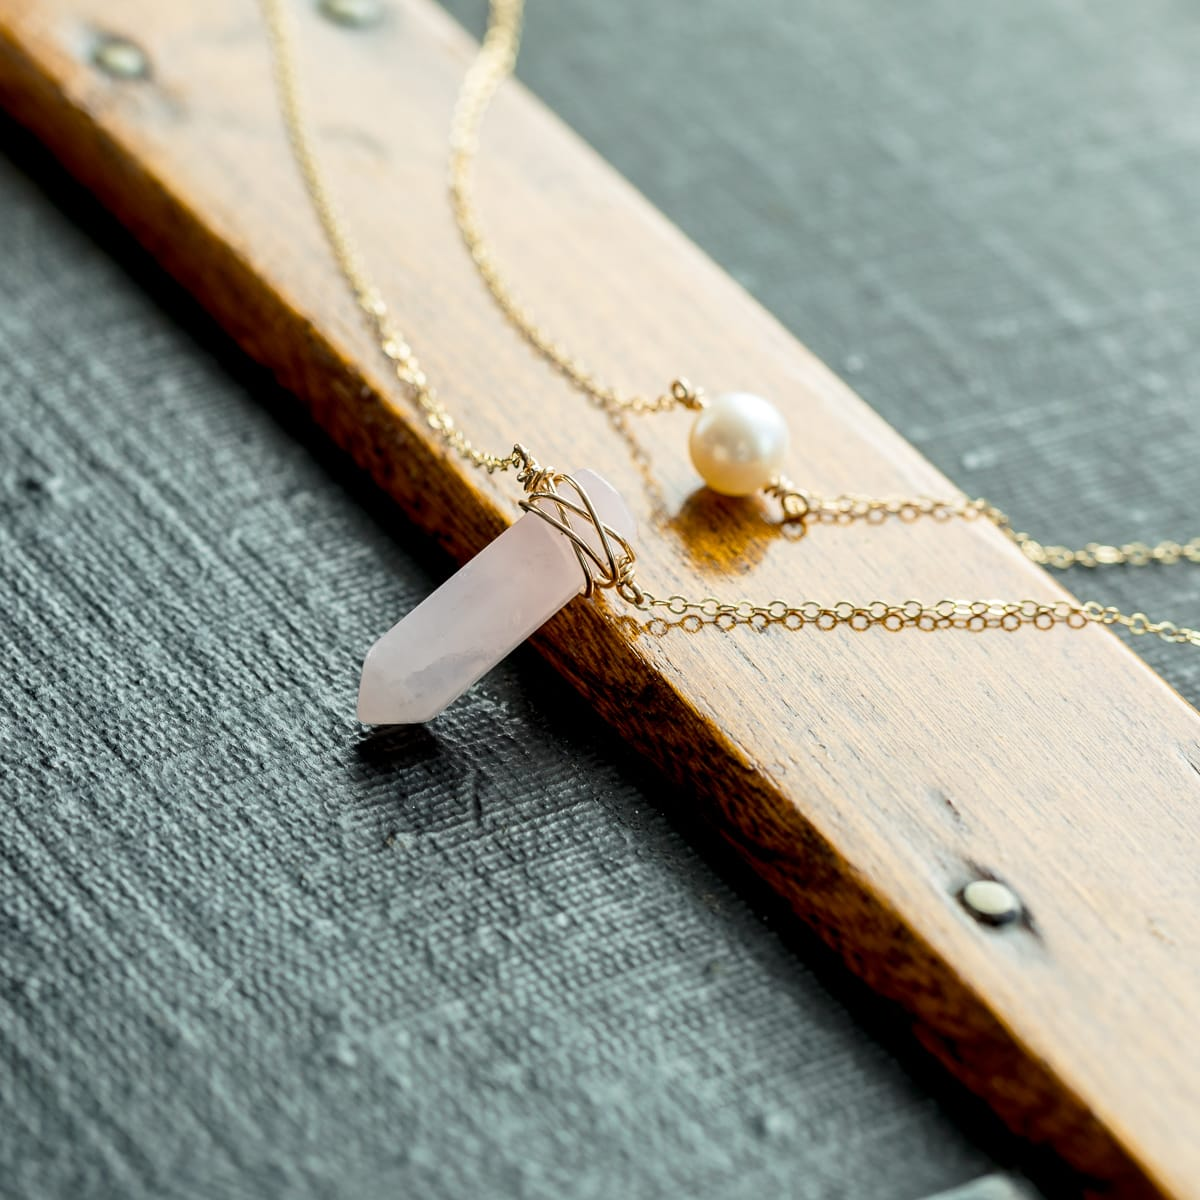 Rose Quartz Necklace, Pearl Necklace, Layered Necklace, Layering Necklace, Dainty Necklace, Minimal Necklace, Bohemian, Gemstone Necklace, Liz.Beth Jewelry Co.